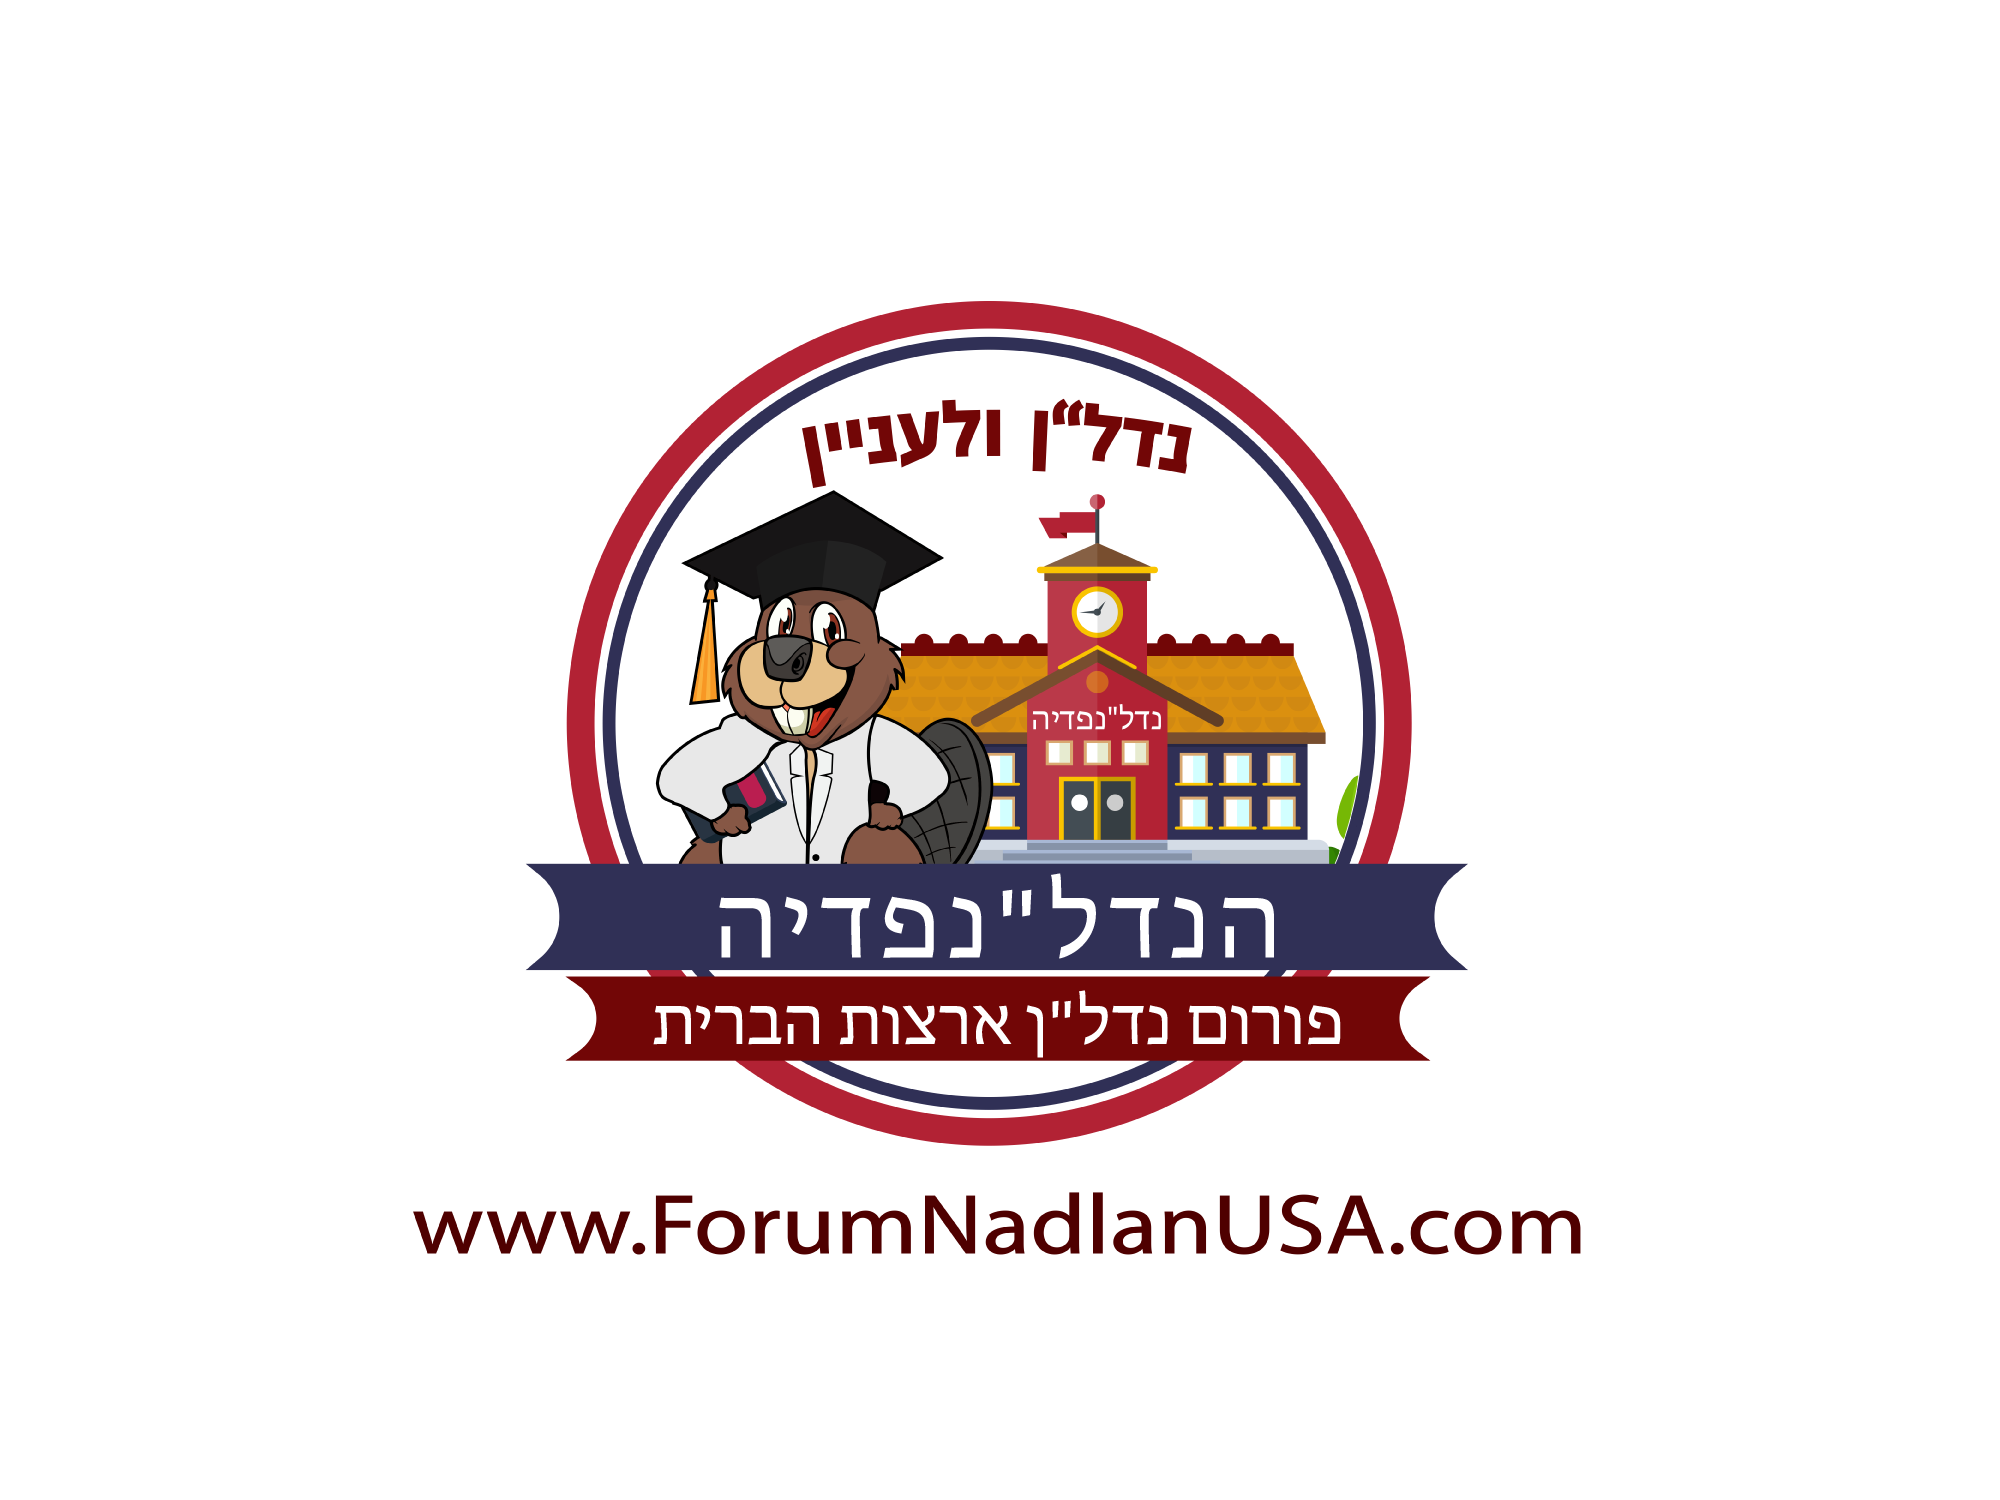 Forum Real Estate USA Nadlanpedia Real Estate University